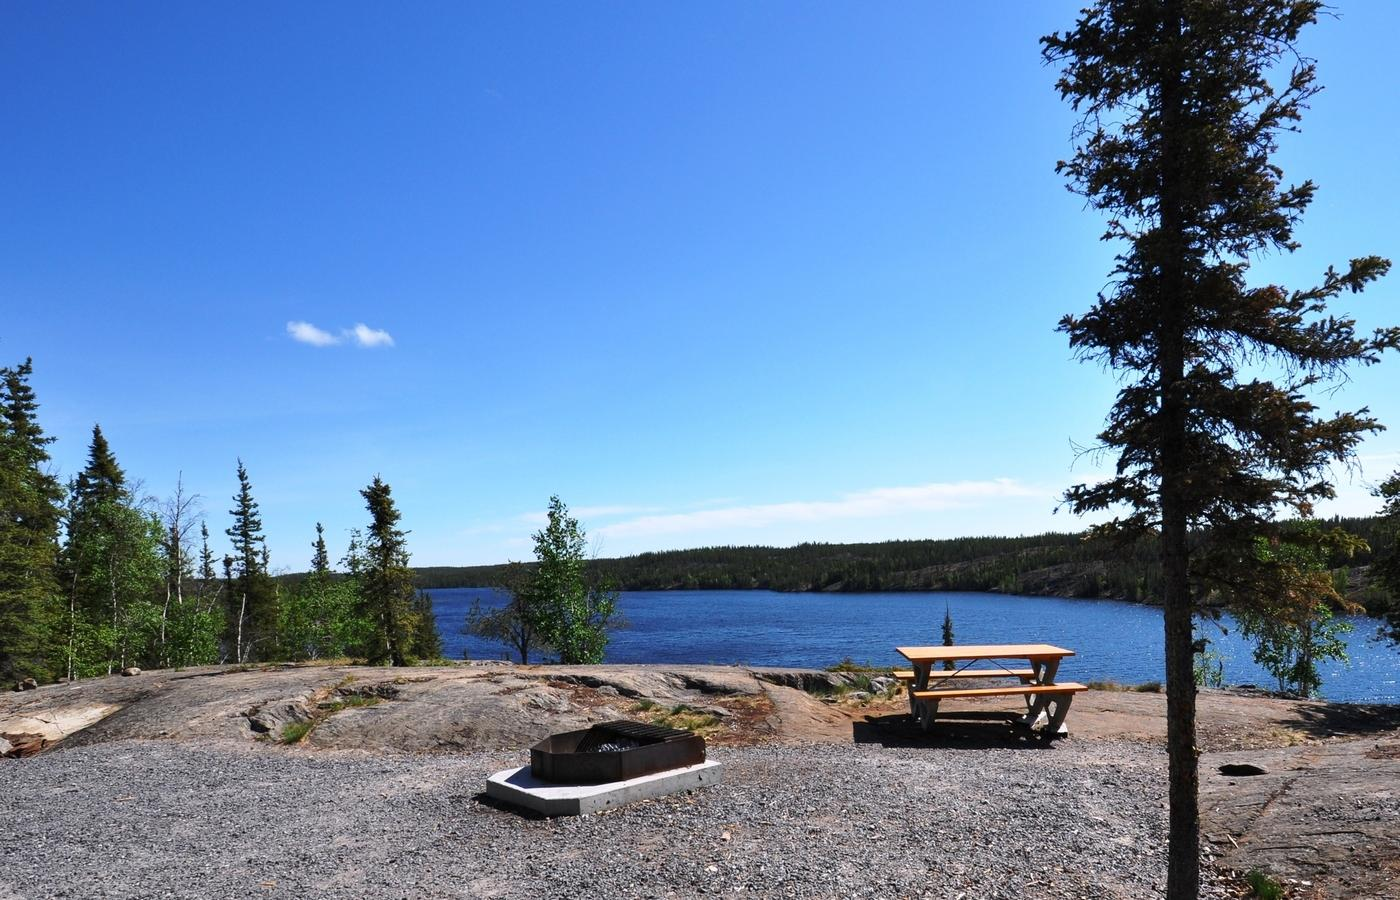 blue sky over a lake-side campsite, minutes outside of Yellowknife